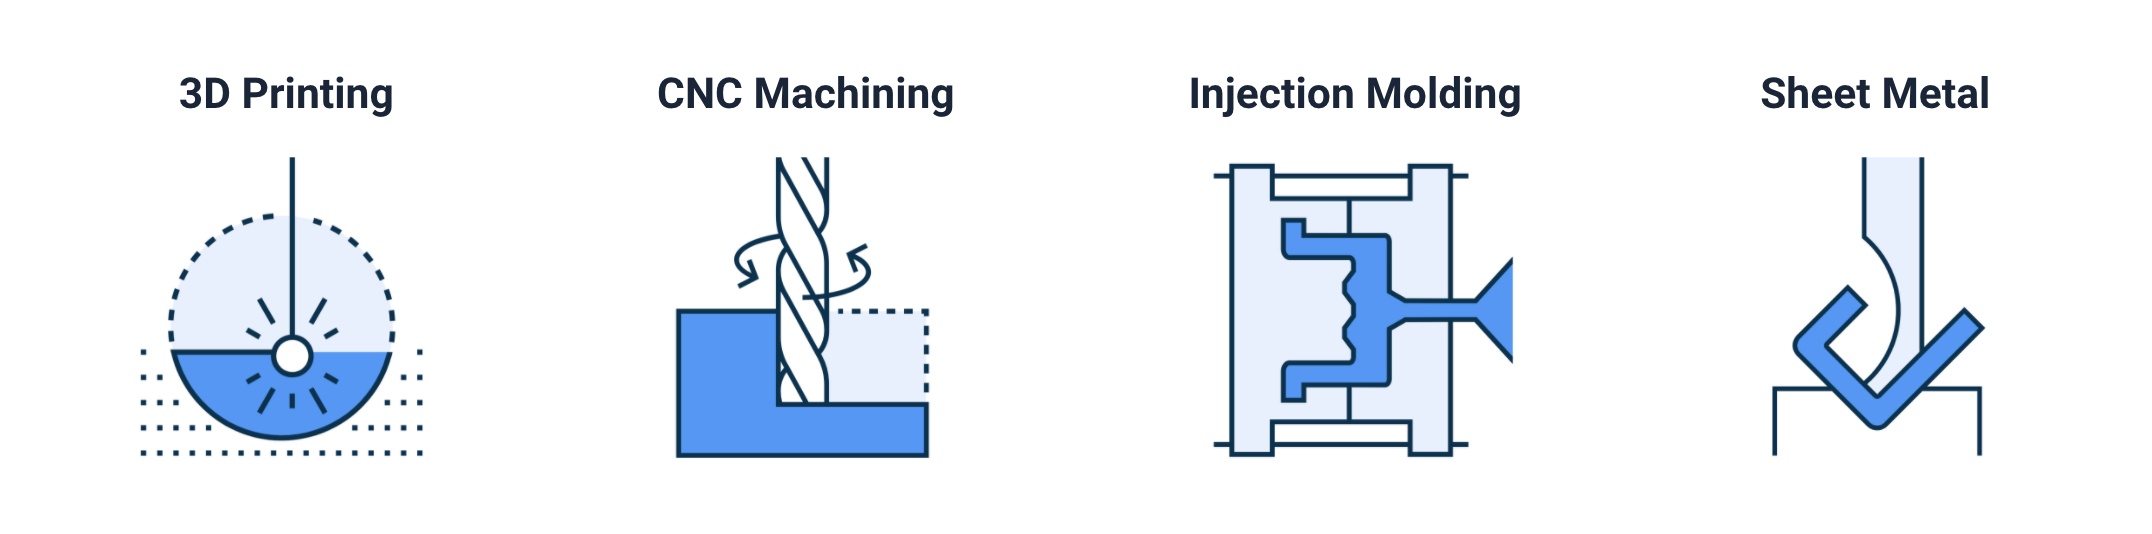 Types of manufacturing services Xometry